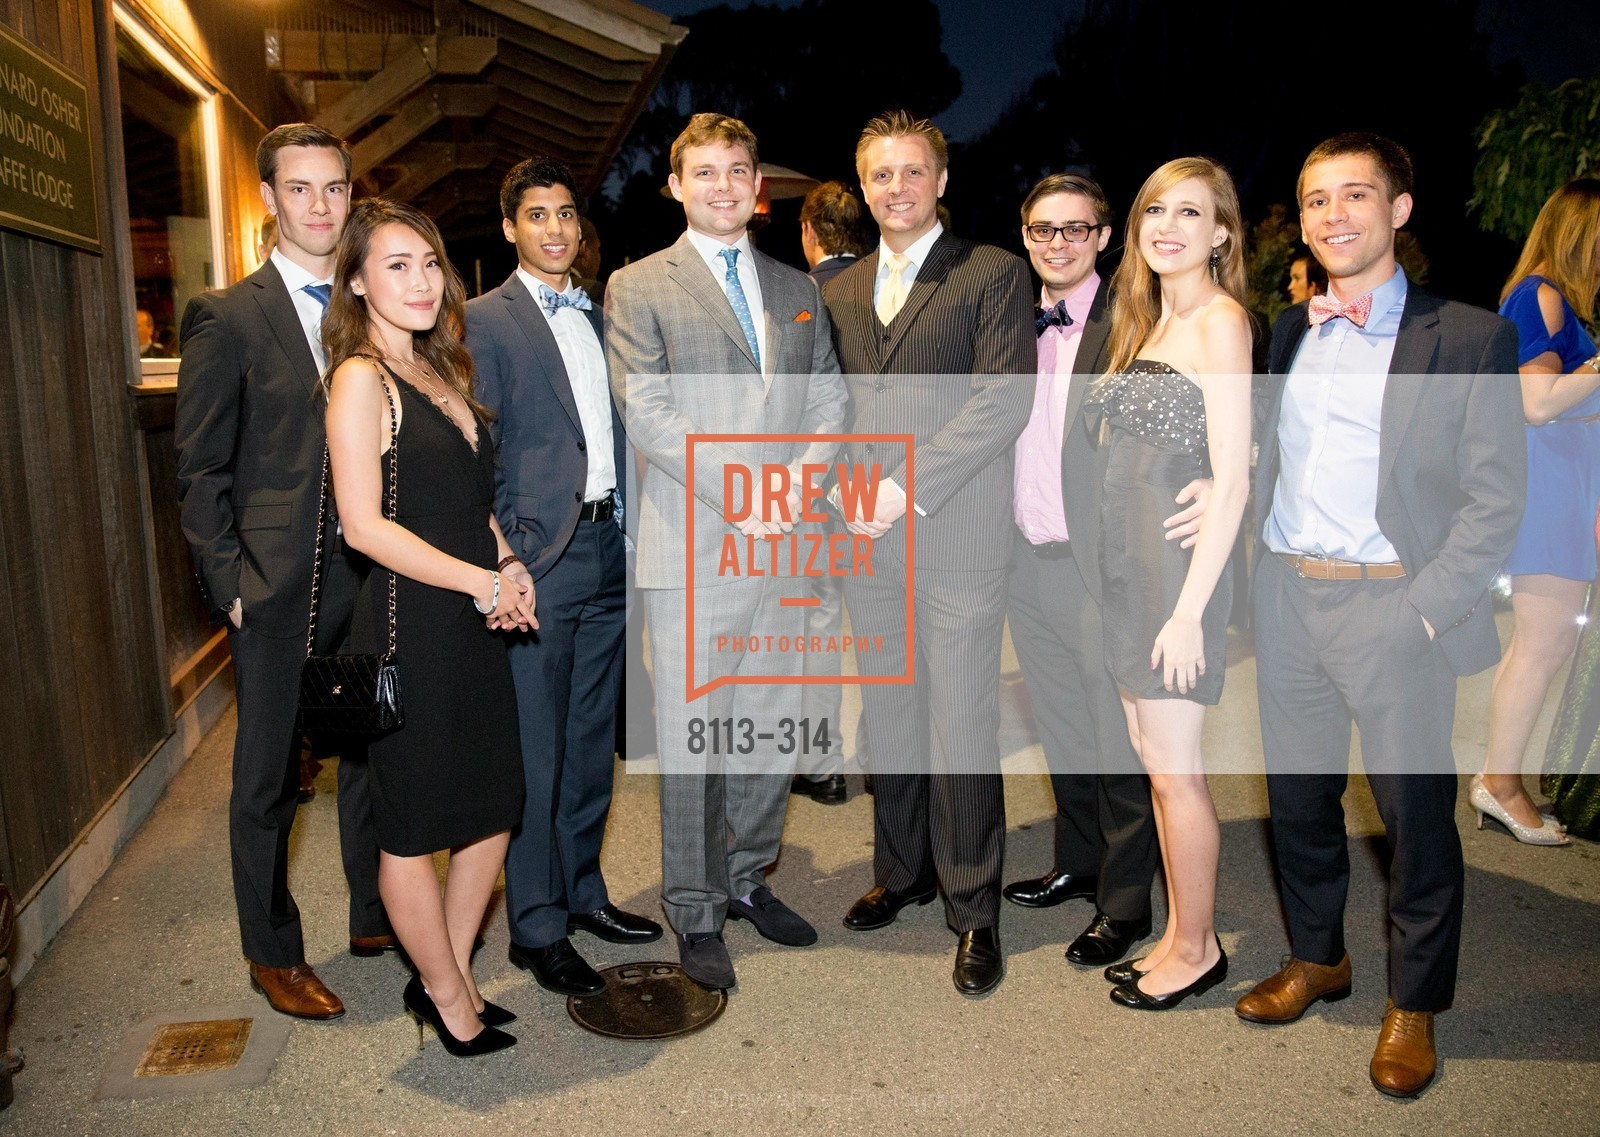 Dan Edwards, Will Andereck, Nate Hennings, Riley Kinser, Michelle Huppert, David Sutton, San Francisco Zoo Fur Ball, San Francisco Zoo, September 25th, 2015